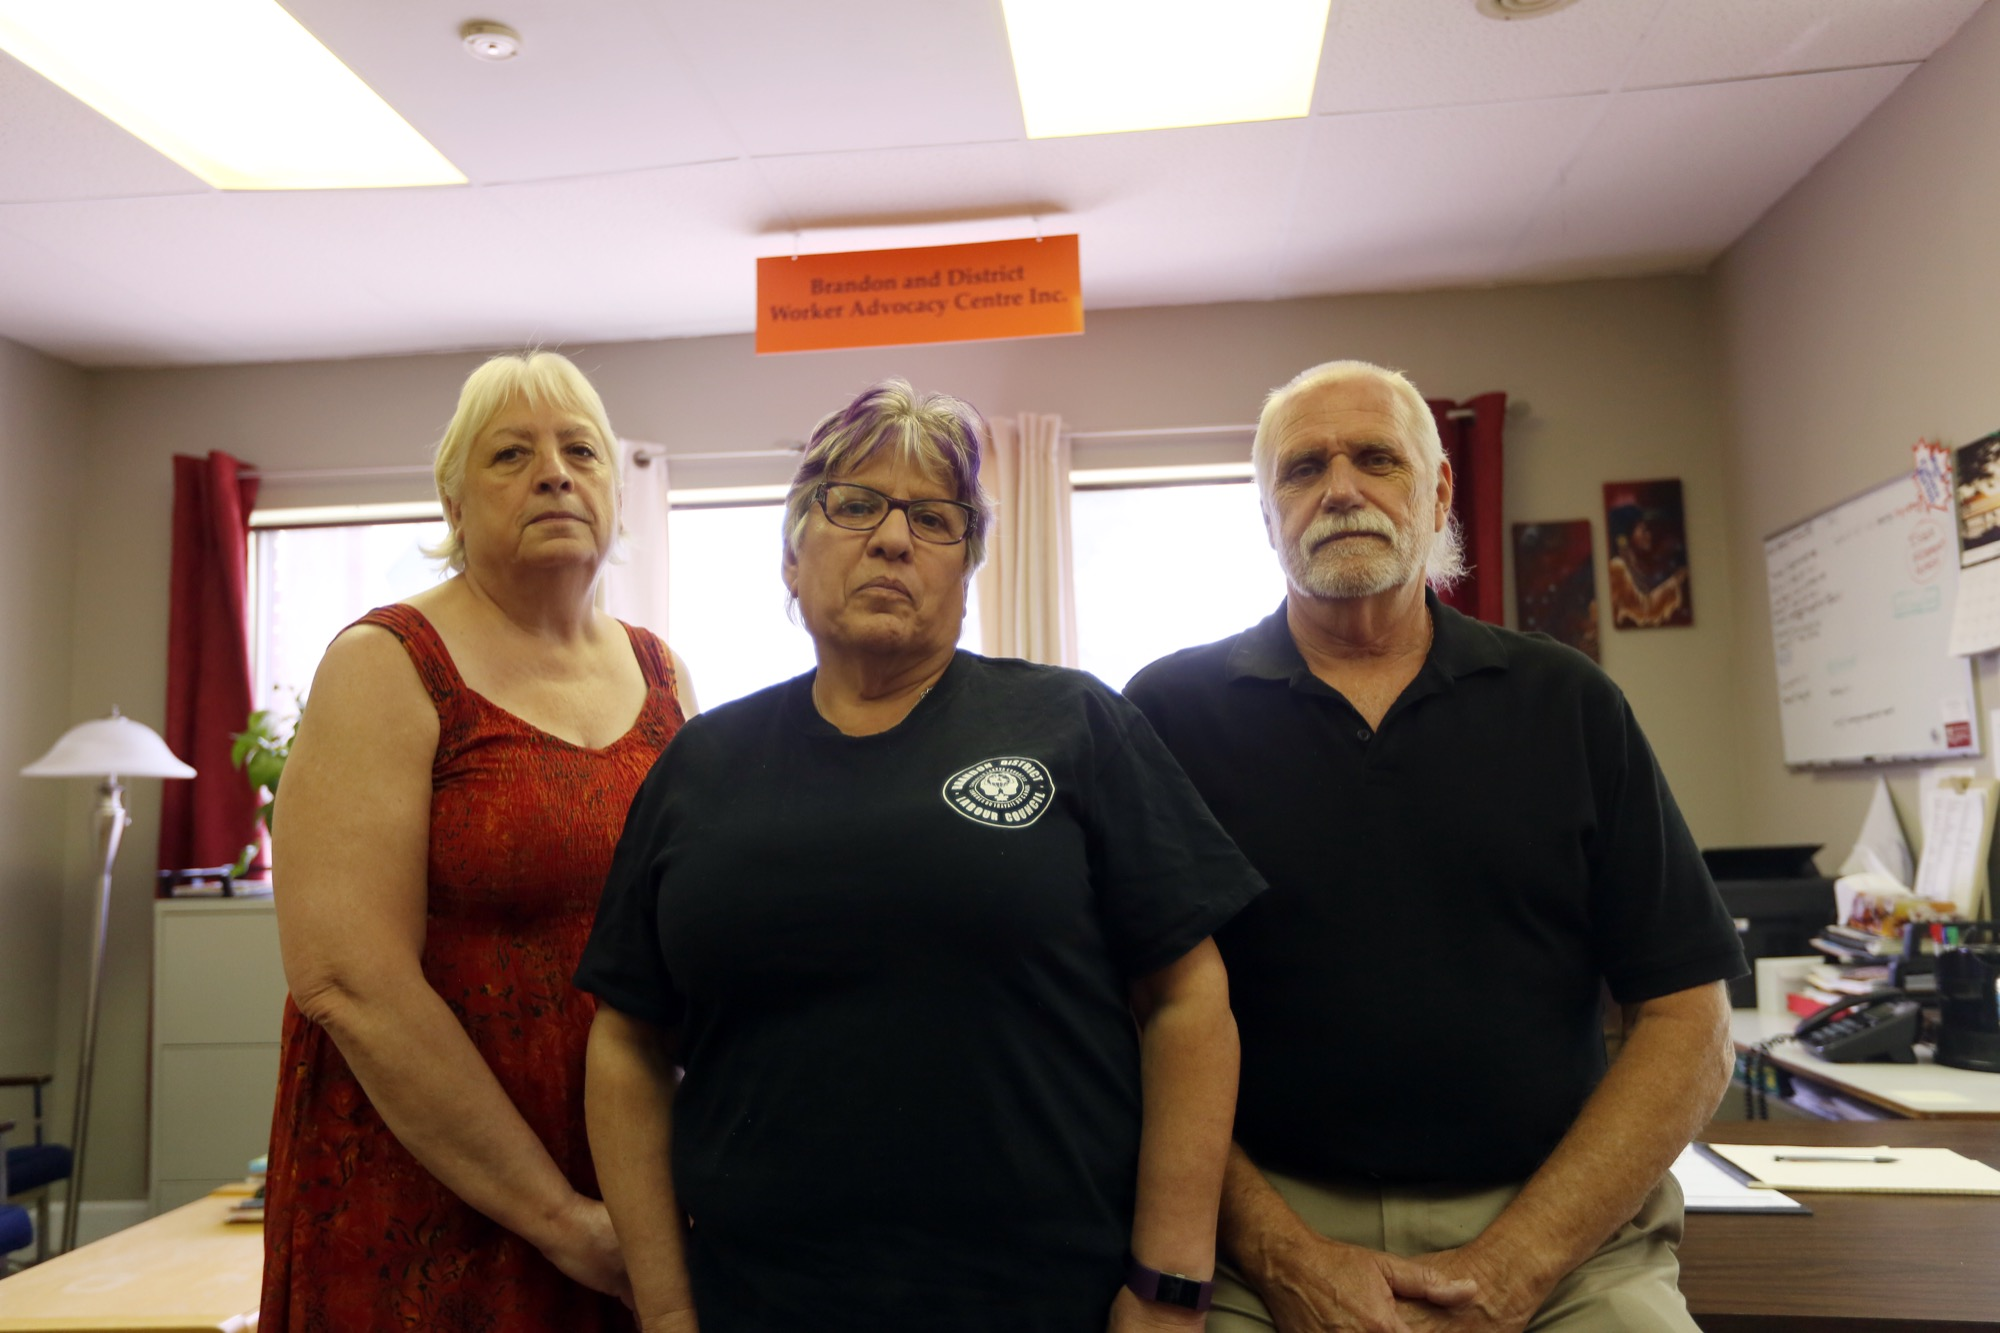 Brandon and District Worker Advocacy Centre Inc. advocate Susan Norman, left, president Kim Fallis and treasurer Garnet Boyd at a farewell event on Saturday. Established in 2012, the centre will close its doors later this month after the province rescinded its funding.